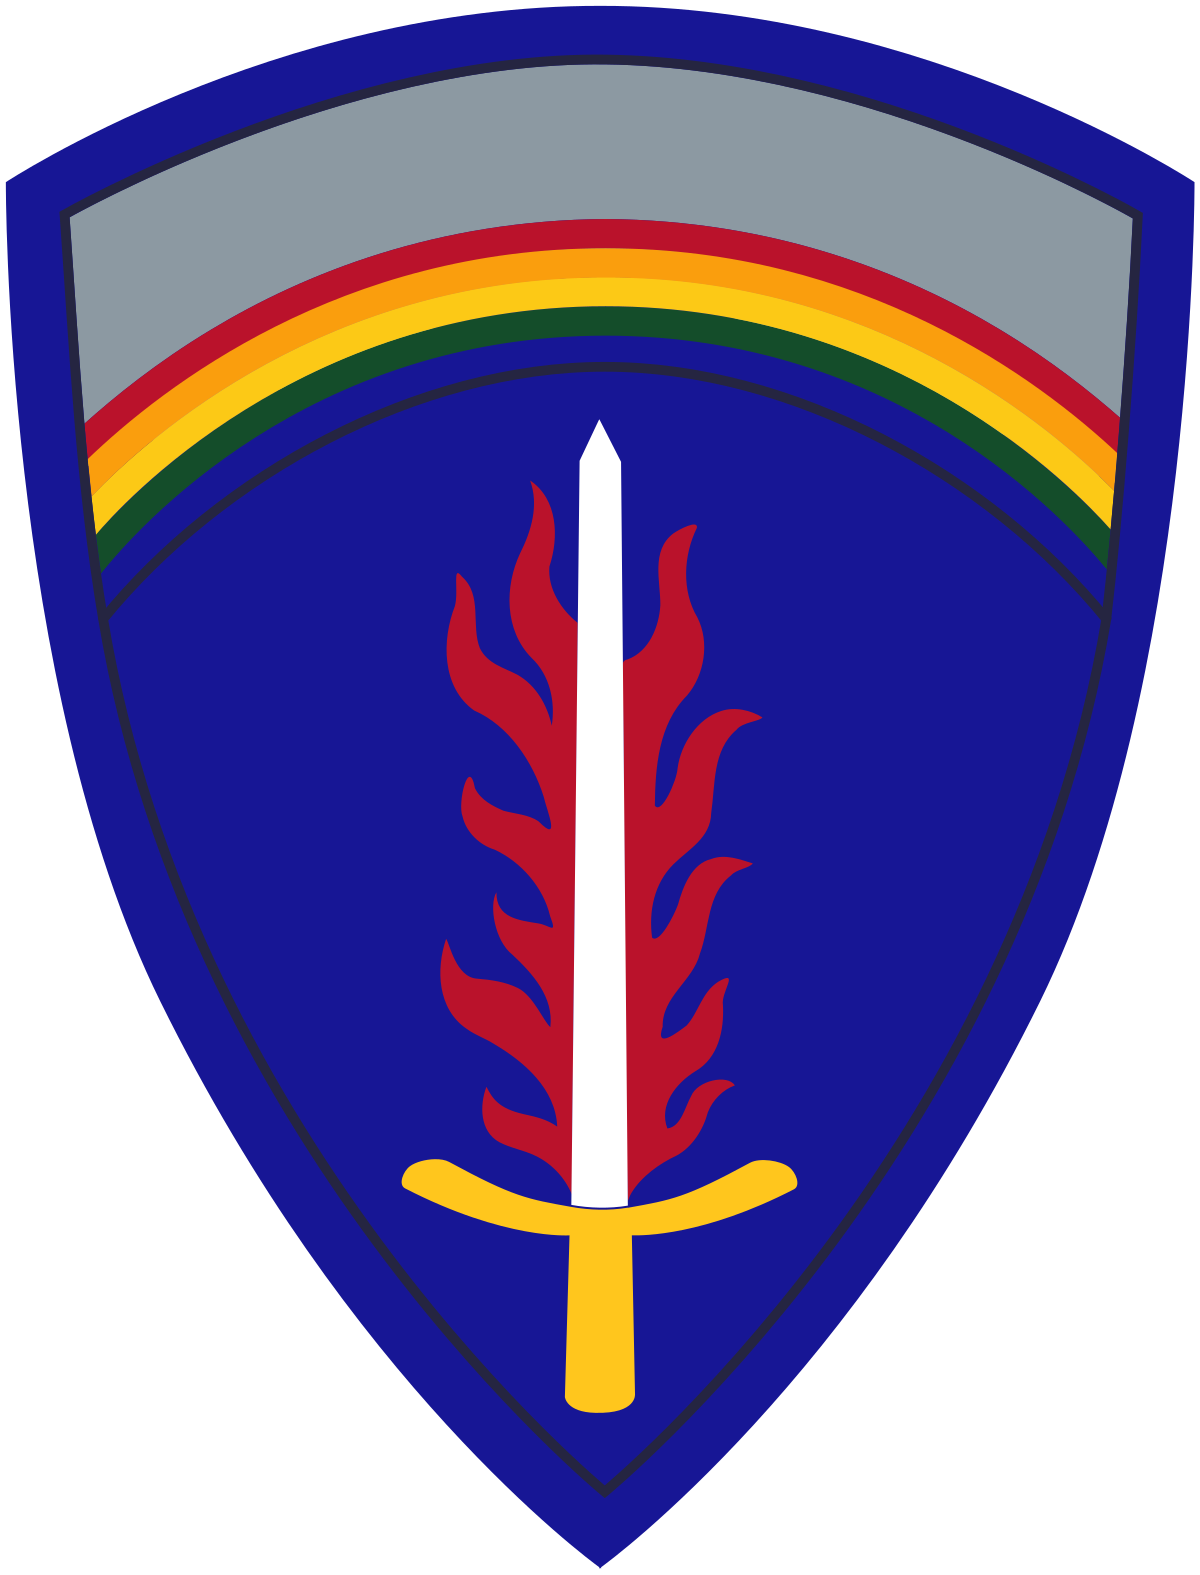 Europe wikipedia . Military clipart army united states